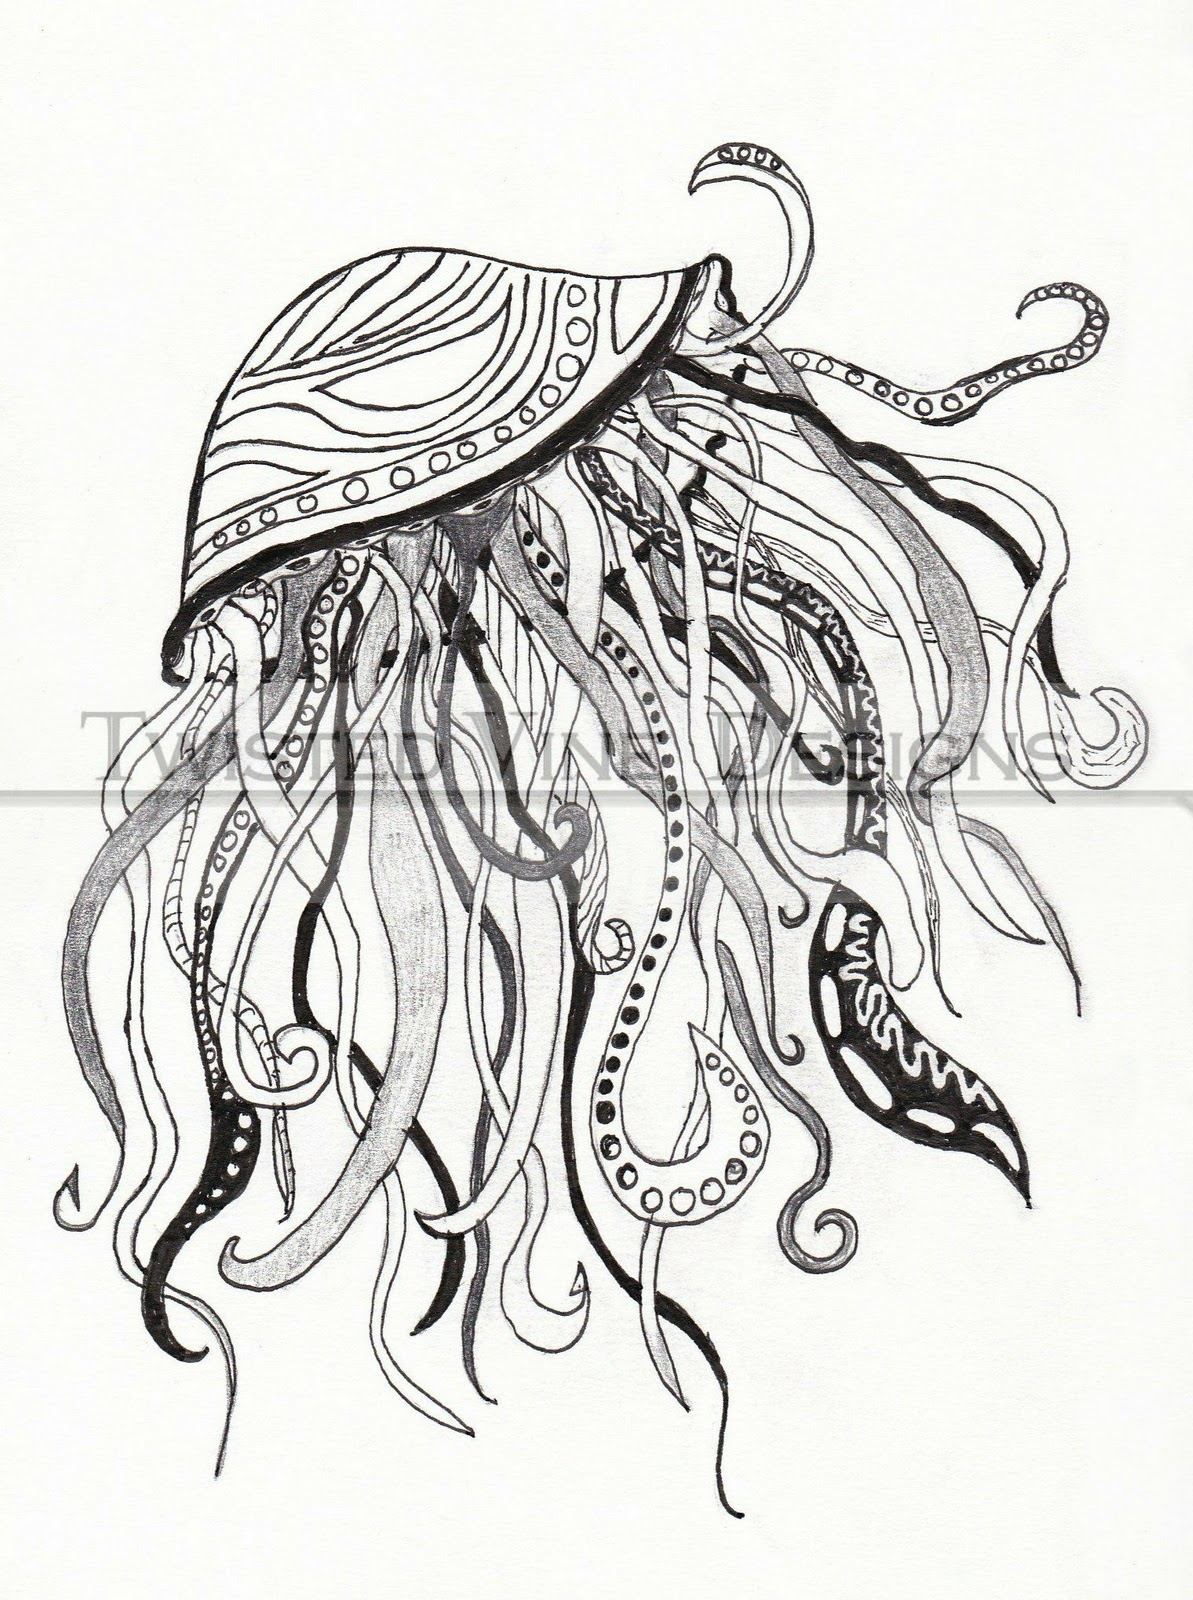 Twisted Vine Designs: Daily Dose of My Art: Jellyfish